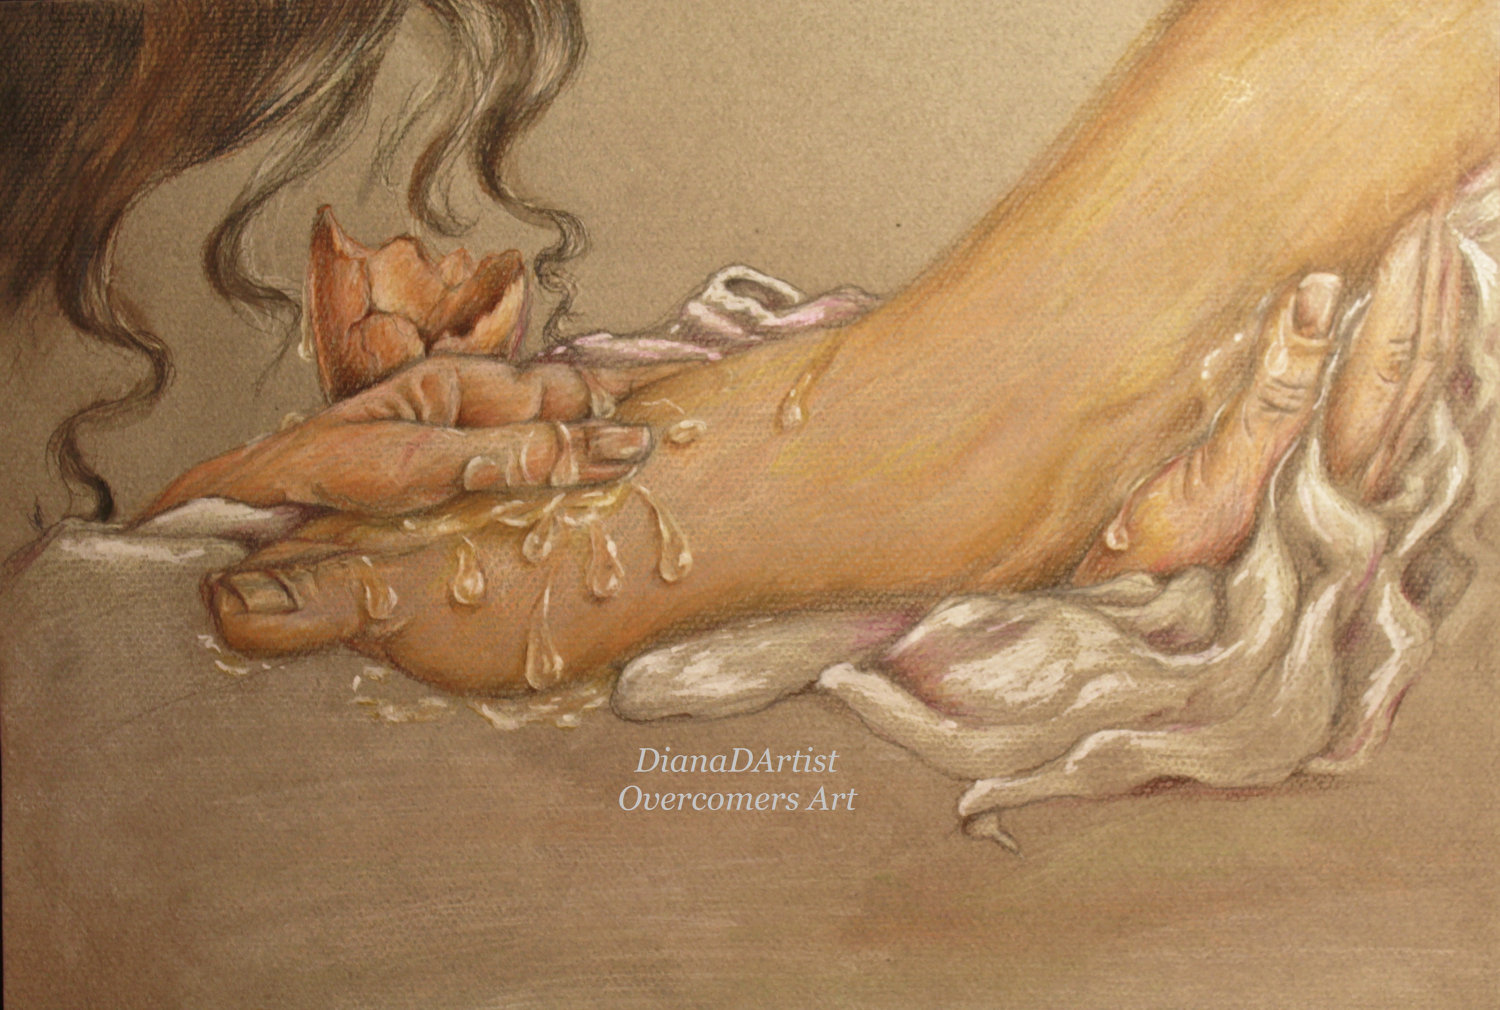 Clipart of mary washing jesus feet clipart free Perfume mary jesus feet clipart pictures - ClipartFox clipart free